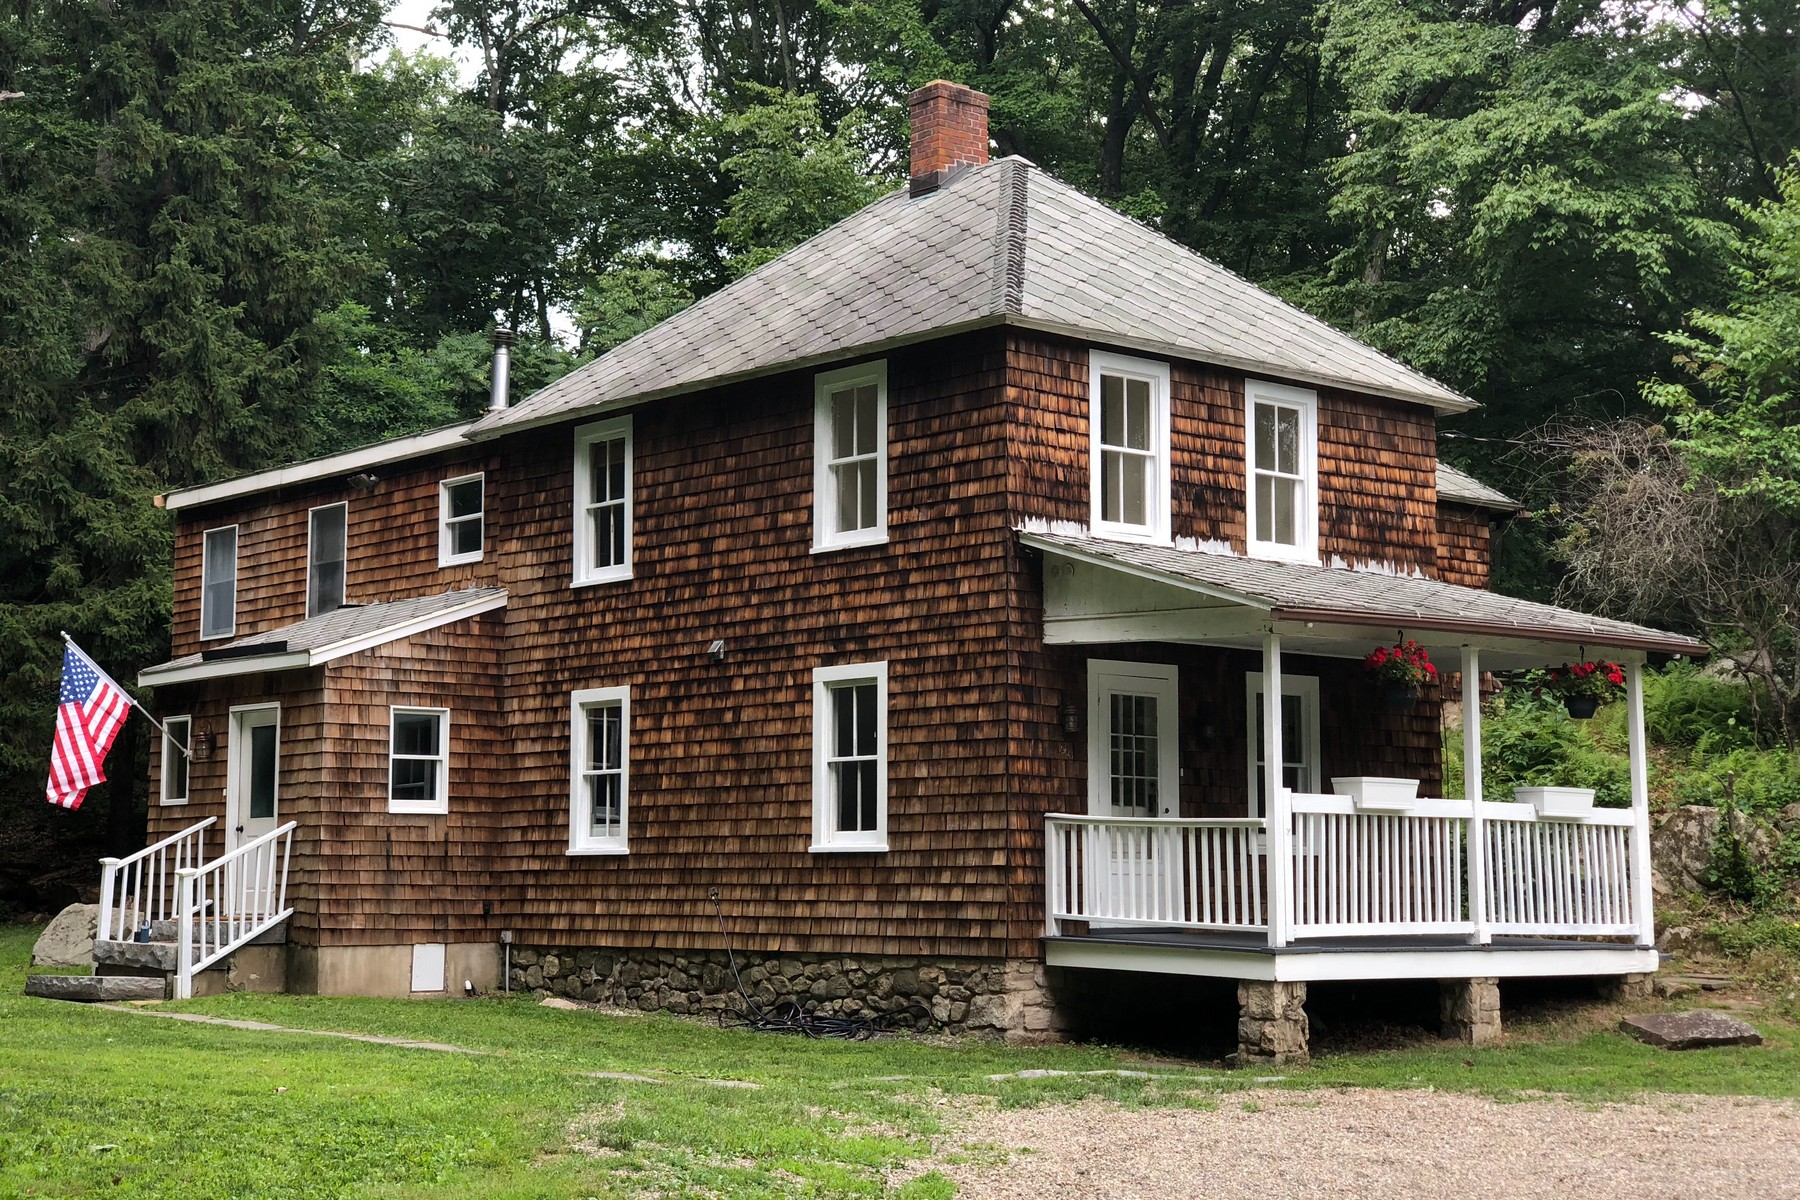 Stunning Antique Colonial Farm House 1903 Long Ridge Road Stamford, Connecticut 06903 Vereinigte Staaten